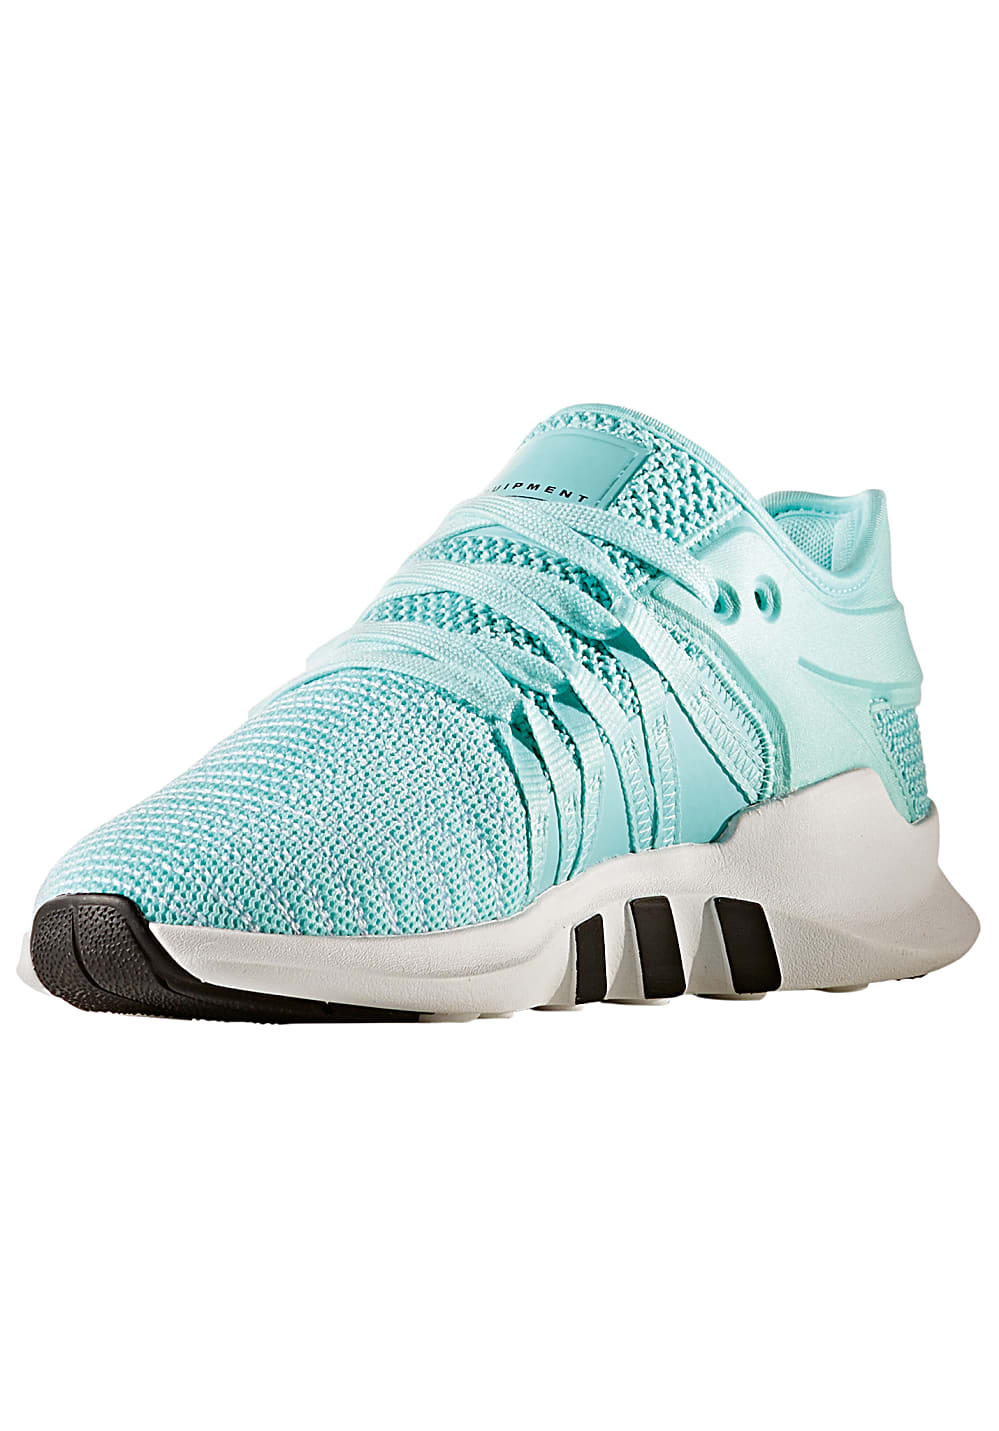 Next. -10%. ADIDAS ORIGINALS. Eqt Racing Adv - Sneakers for Women 227fe23ae